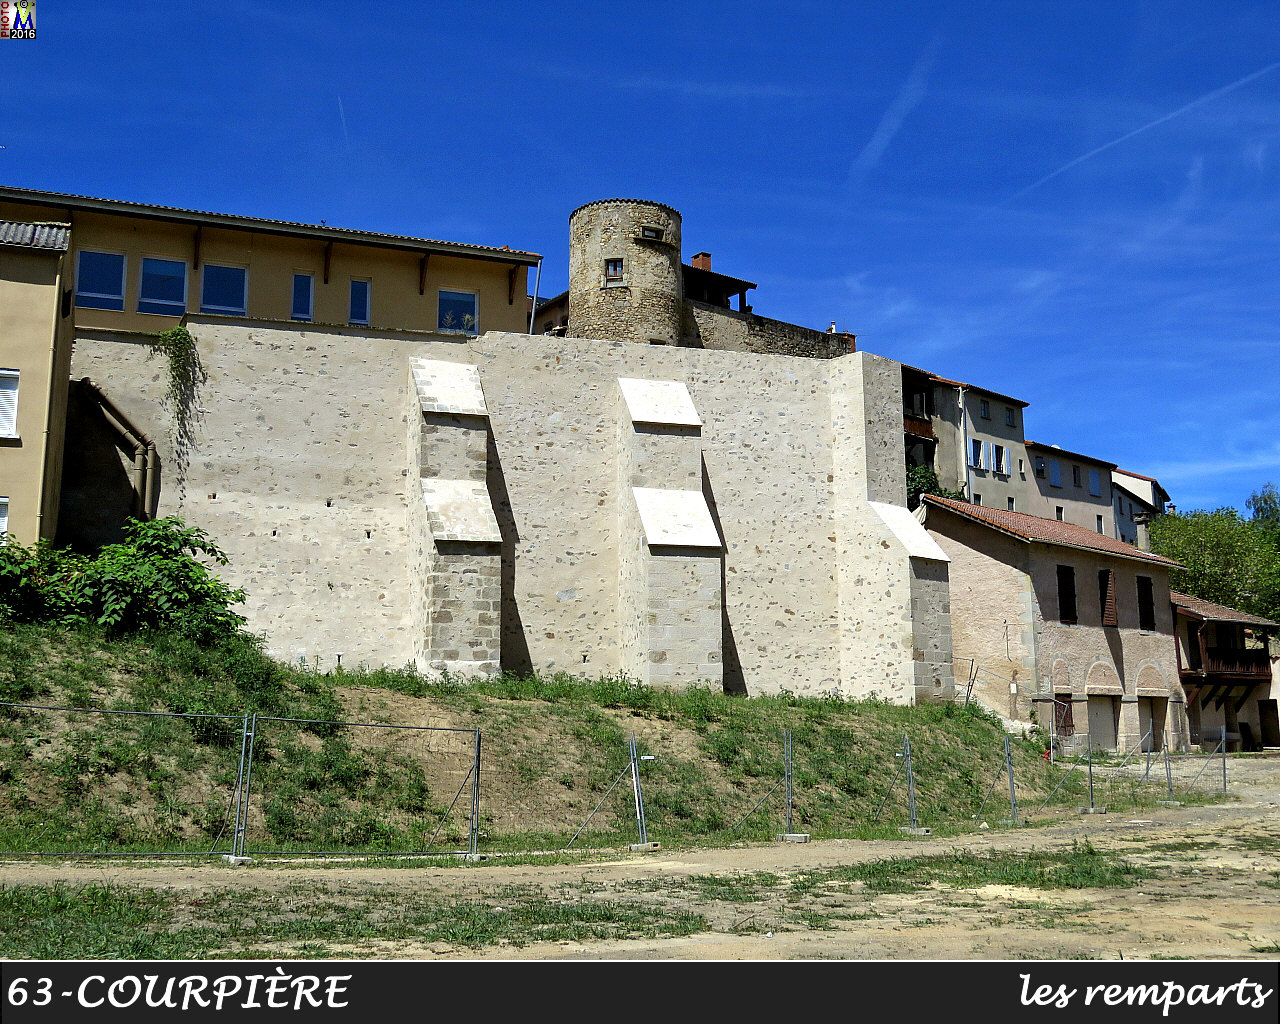 63COURPIERE_remparts_100.jpg